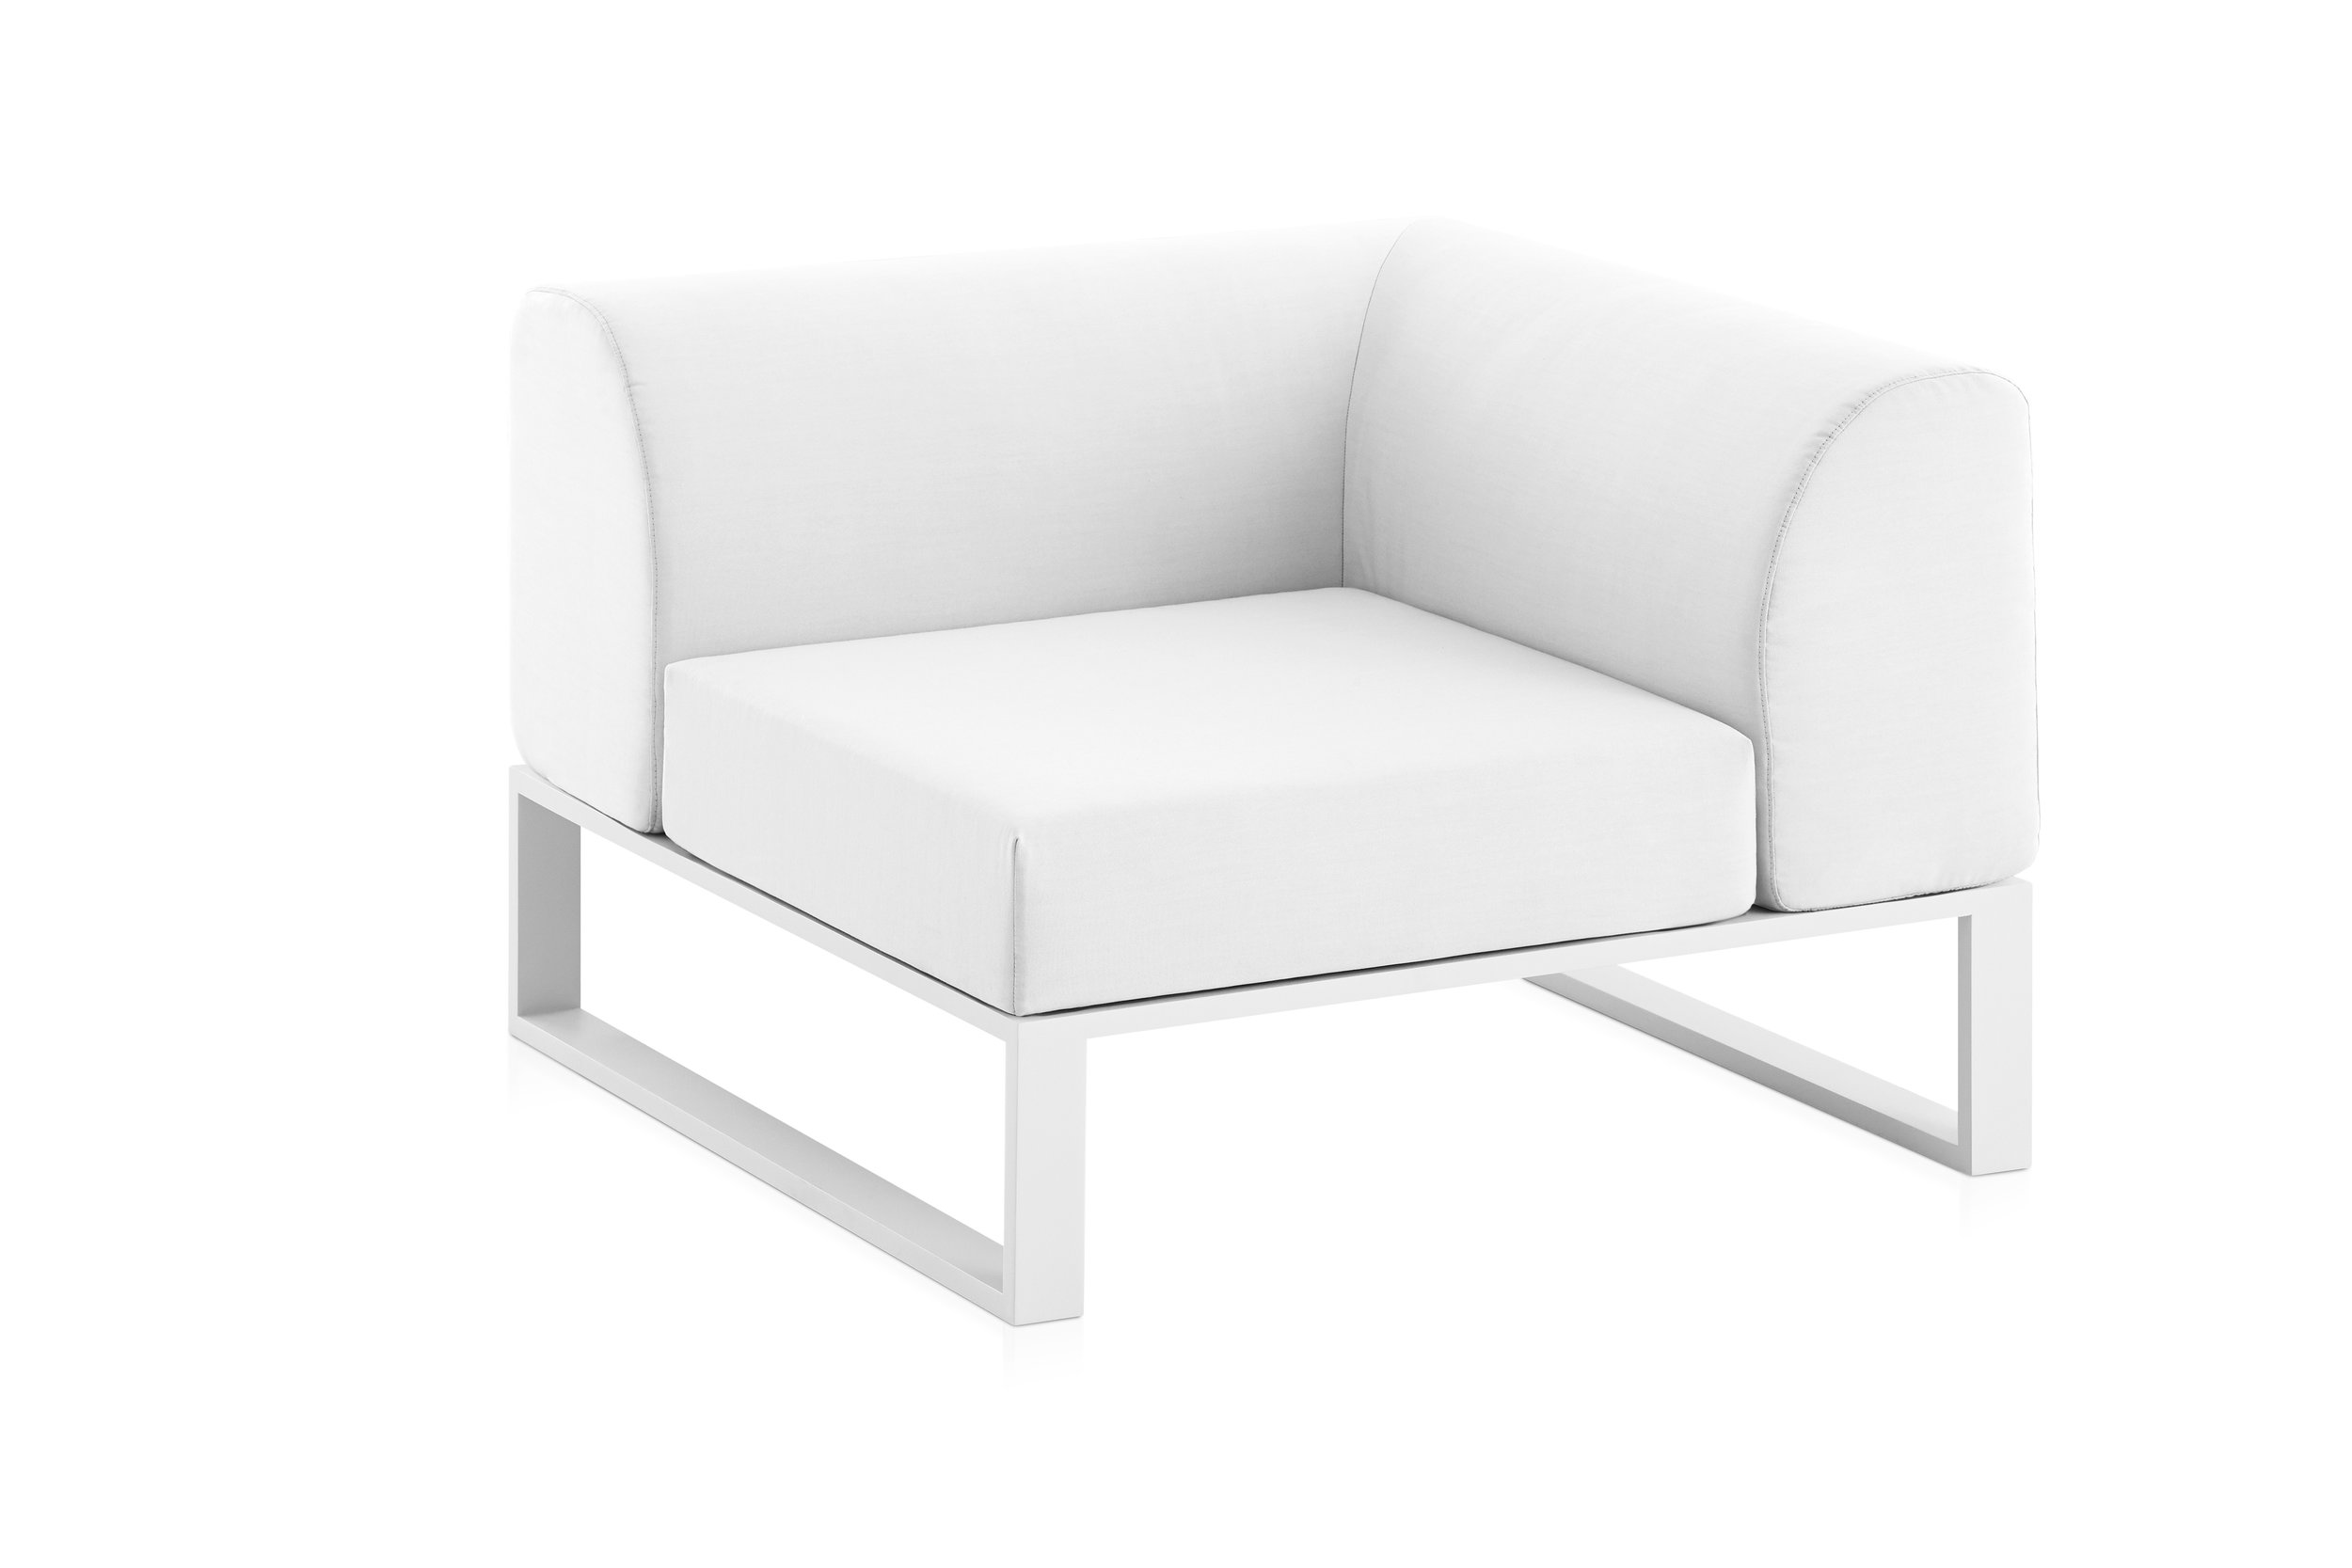 Ploid single corner sofa white.jpg